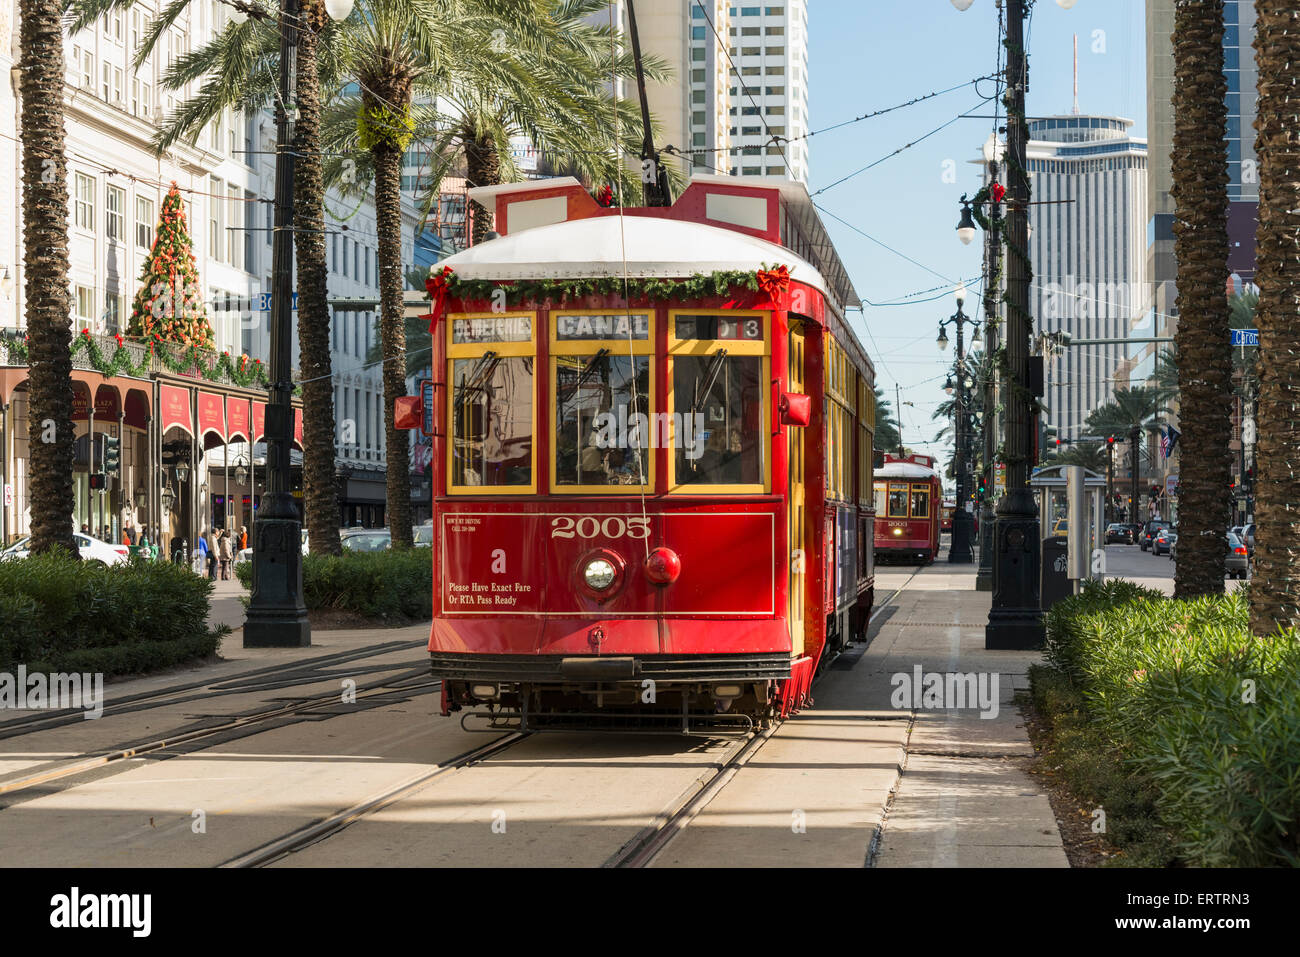 Tram streetcar on Canal Street, New Orleans French Quarter, Louisiana, USA - Stock Image